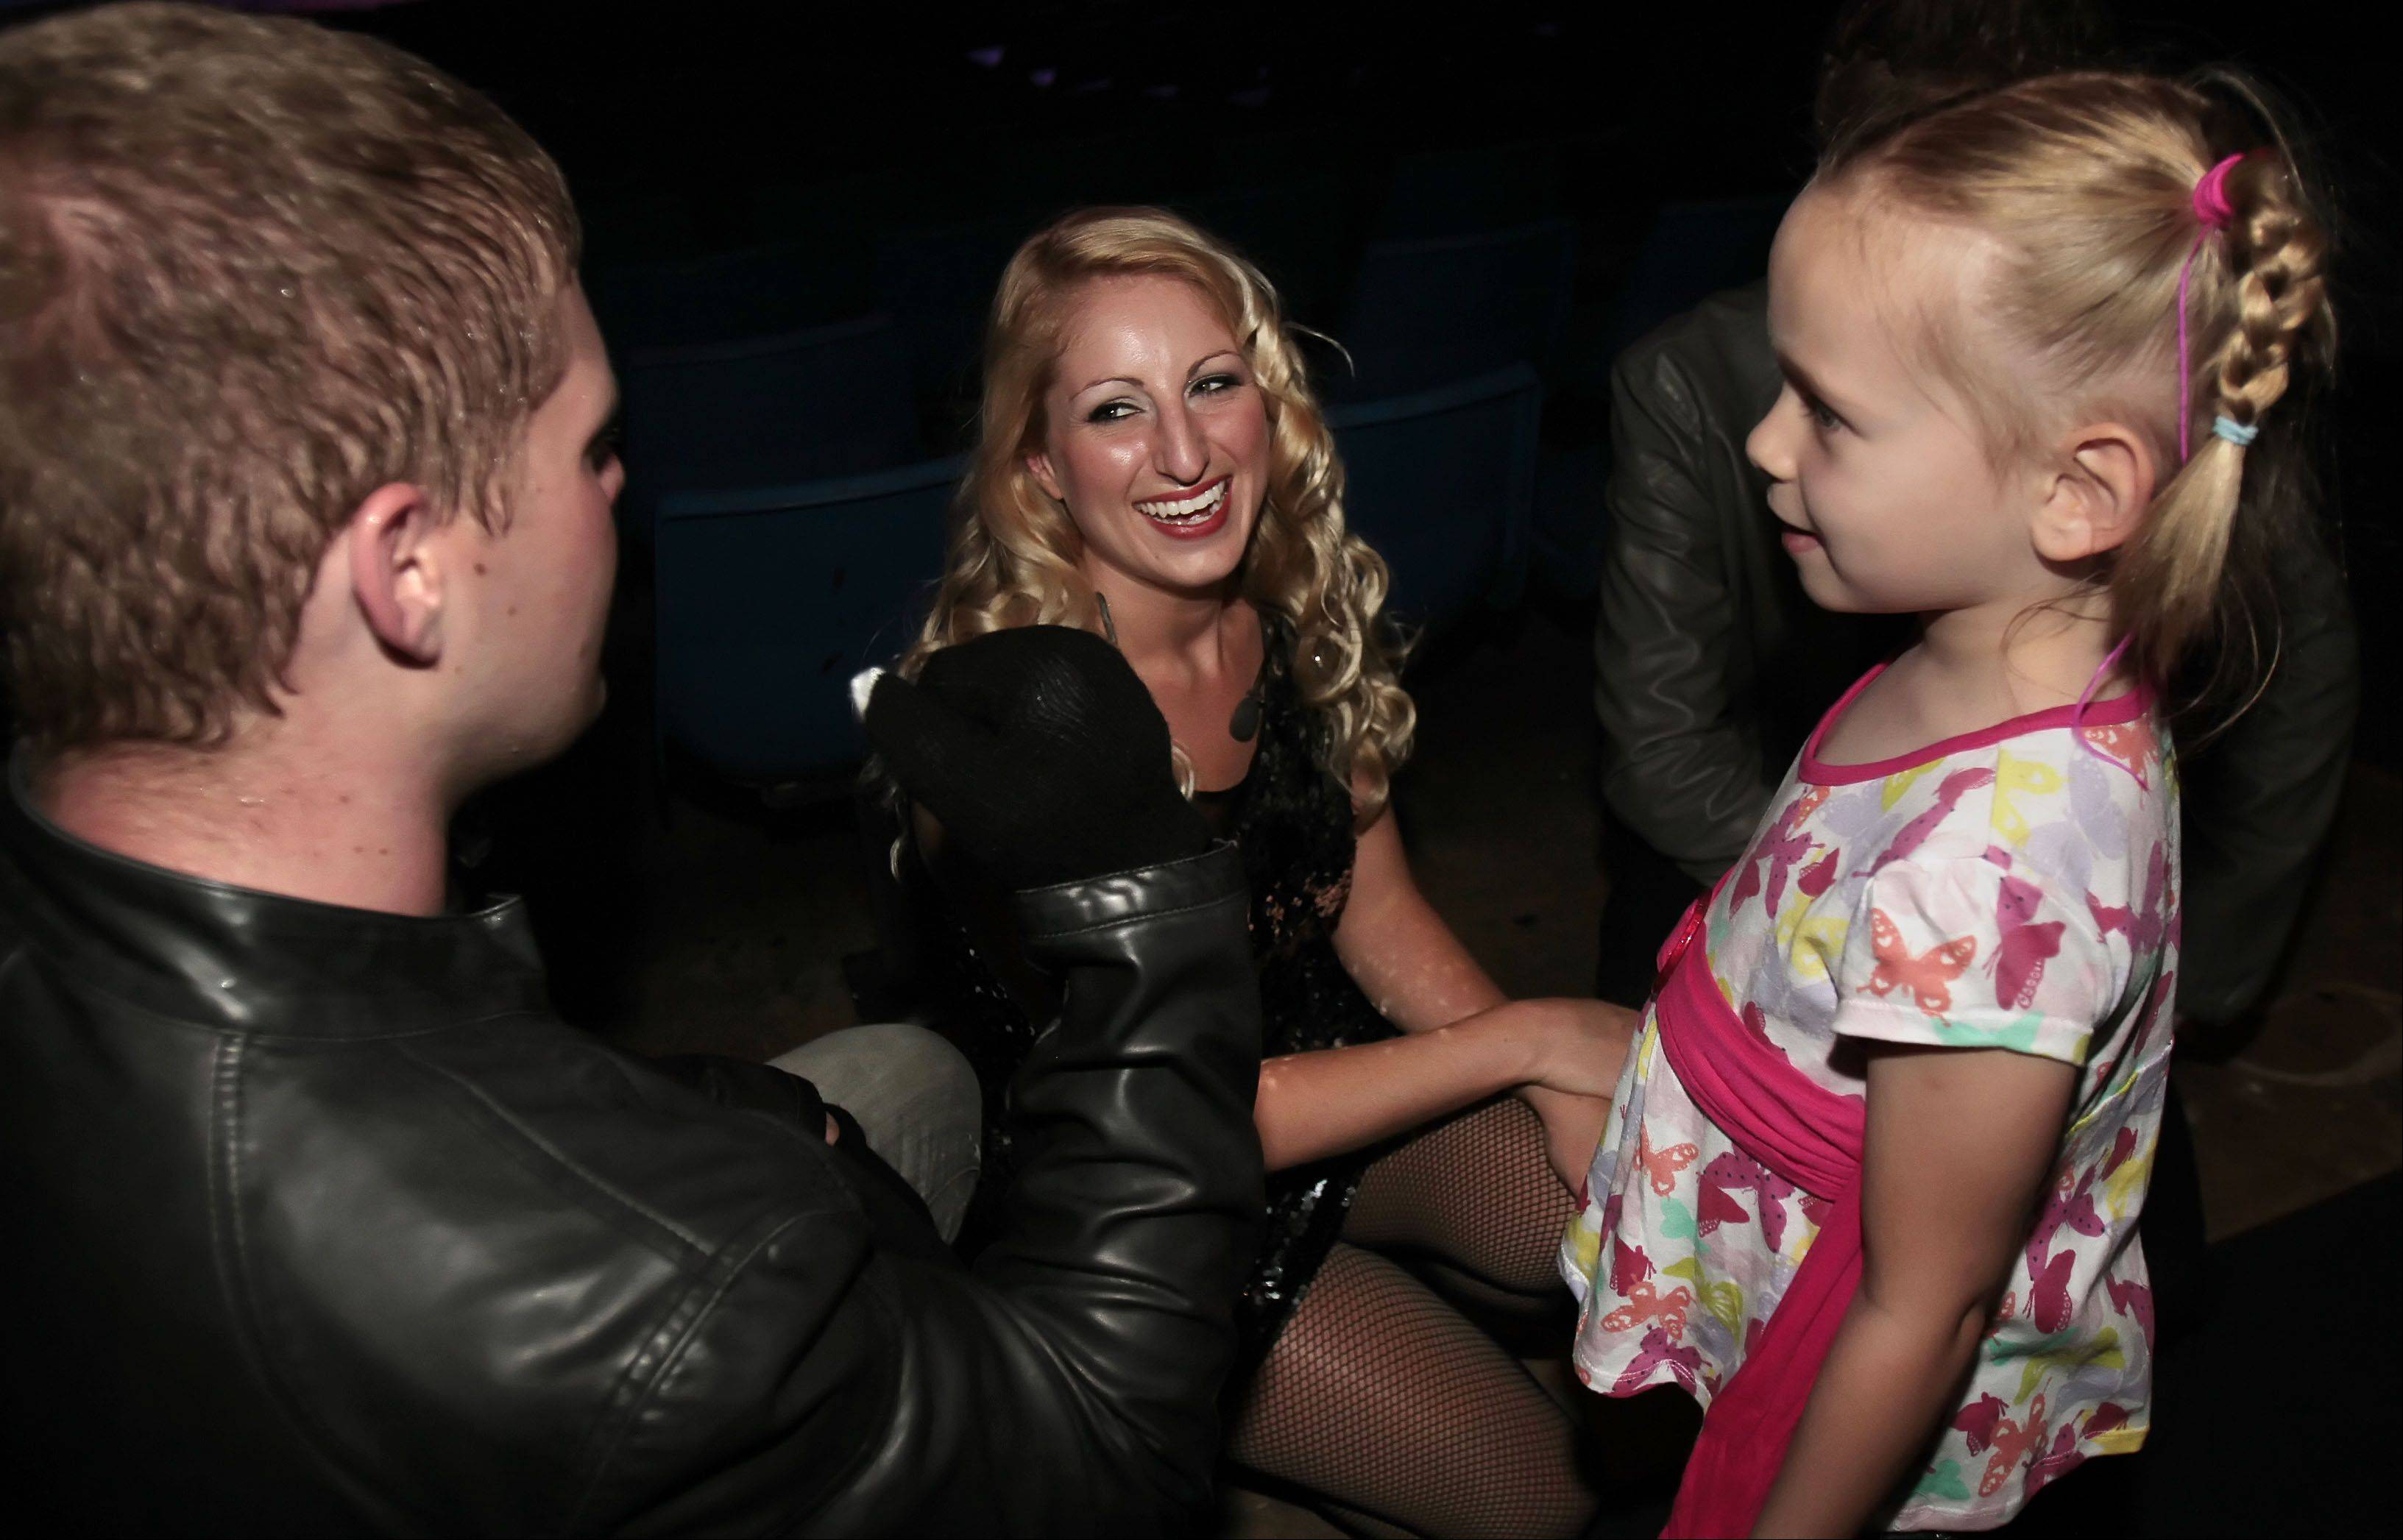 From left, cast members Connor See of Decatur and Charissa Hope of Chicago talk with 5-year-old Shaylyn Braun of Bristol, Wisconsin after the show.